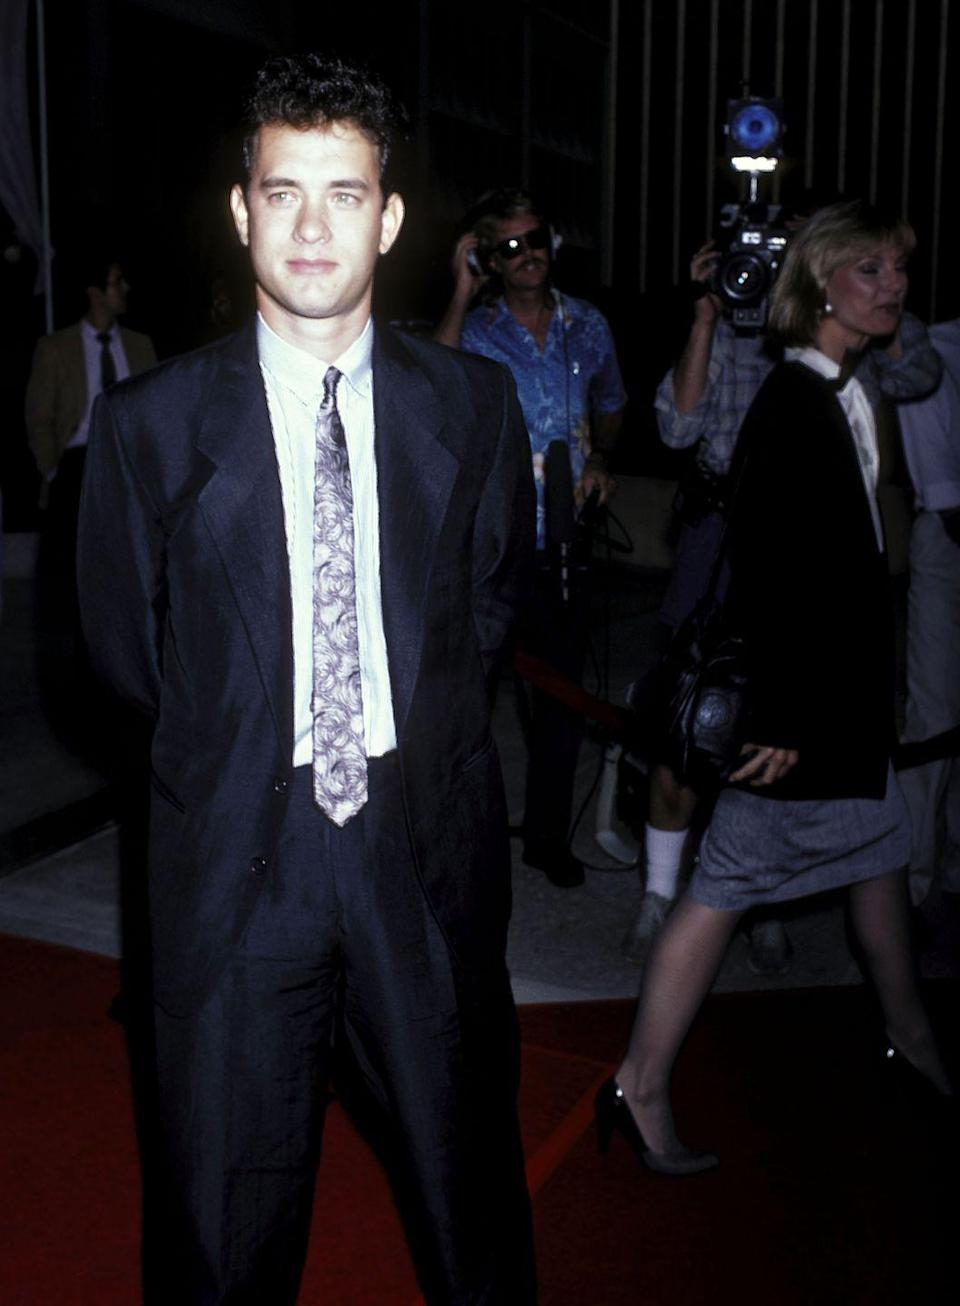 <p>Before starring in his breakout role in <em>Big, </em>Tom Hanks attended the premiere of another one of his early films: <em>Nothing in Common. </em>What a tie, right?</p>